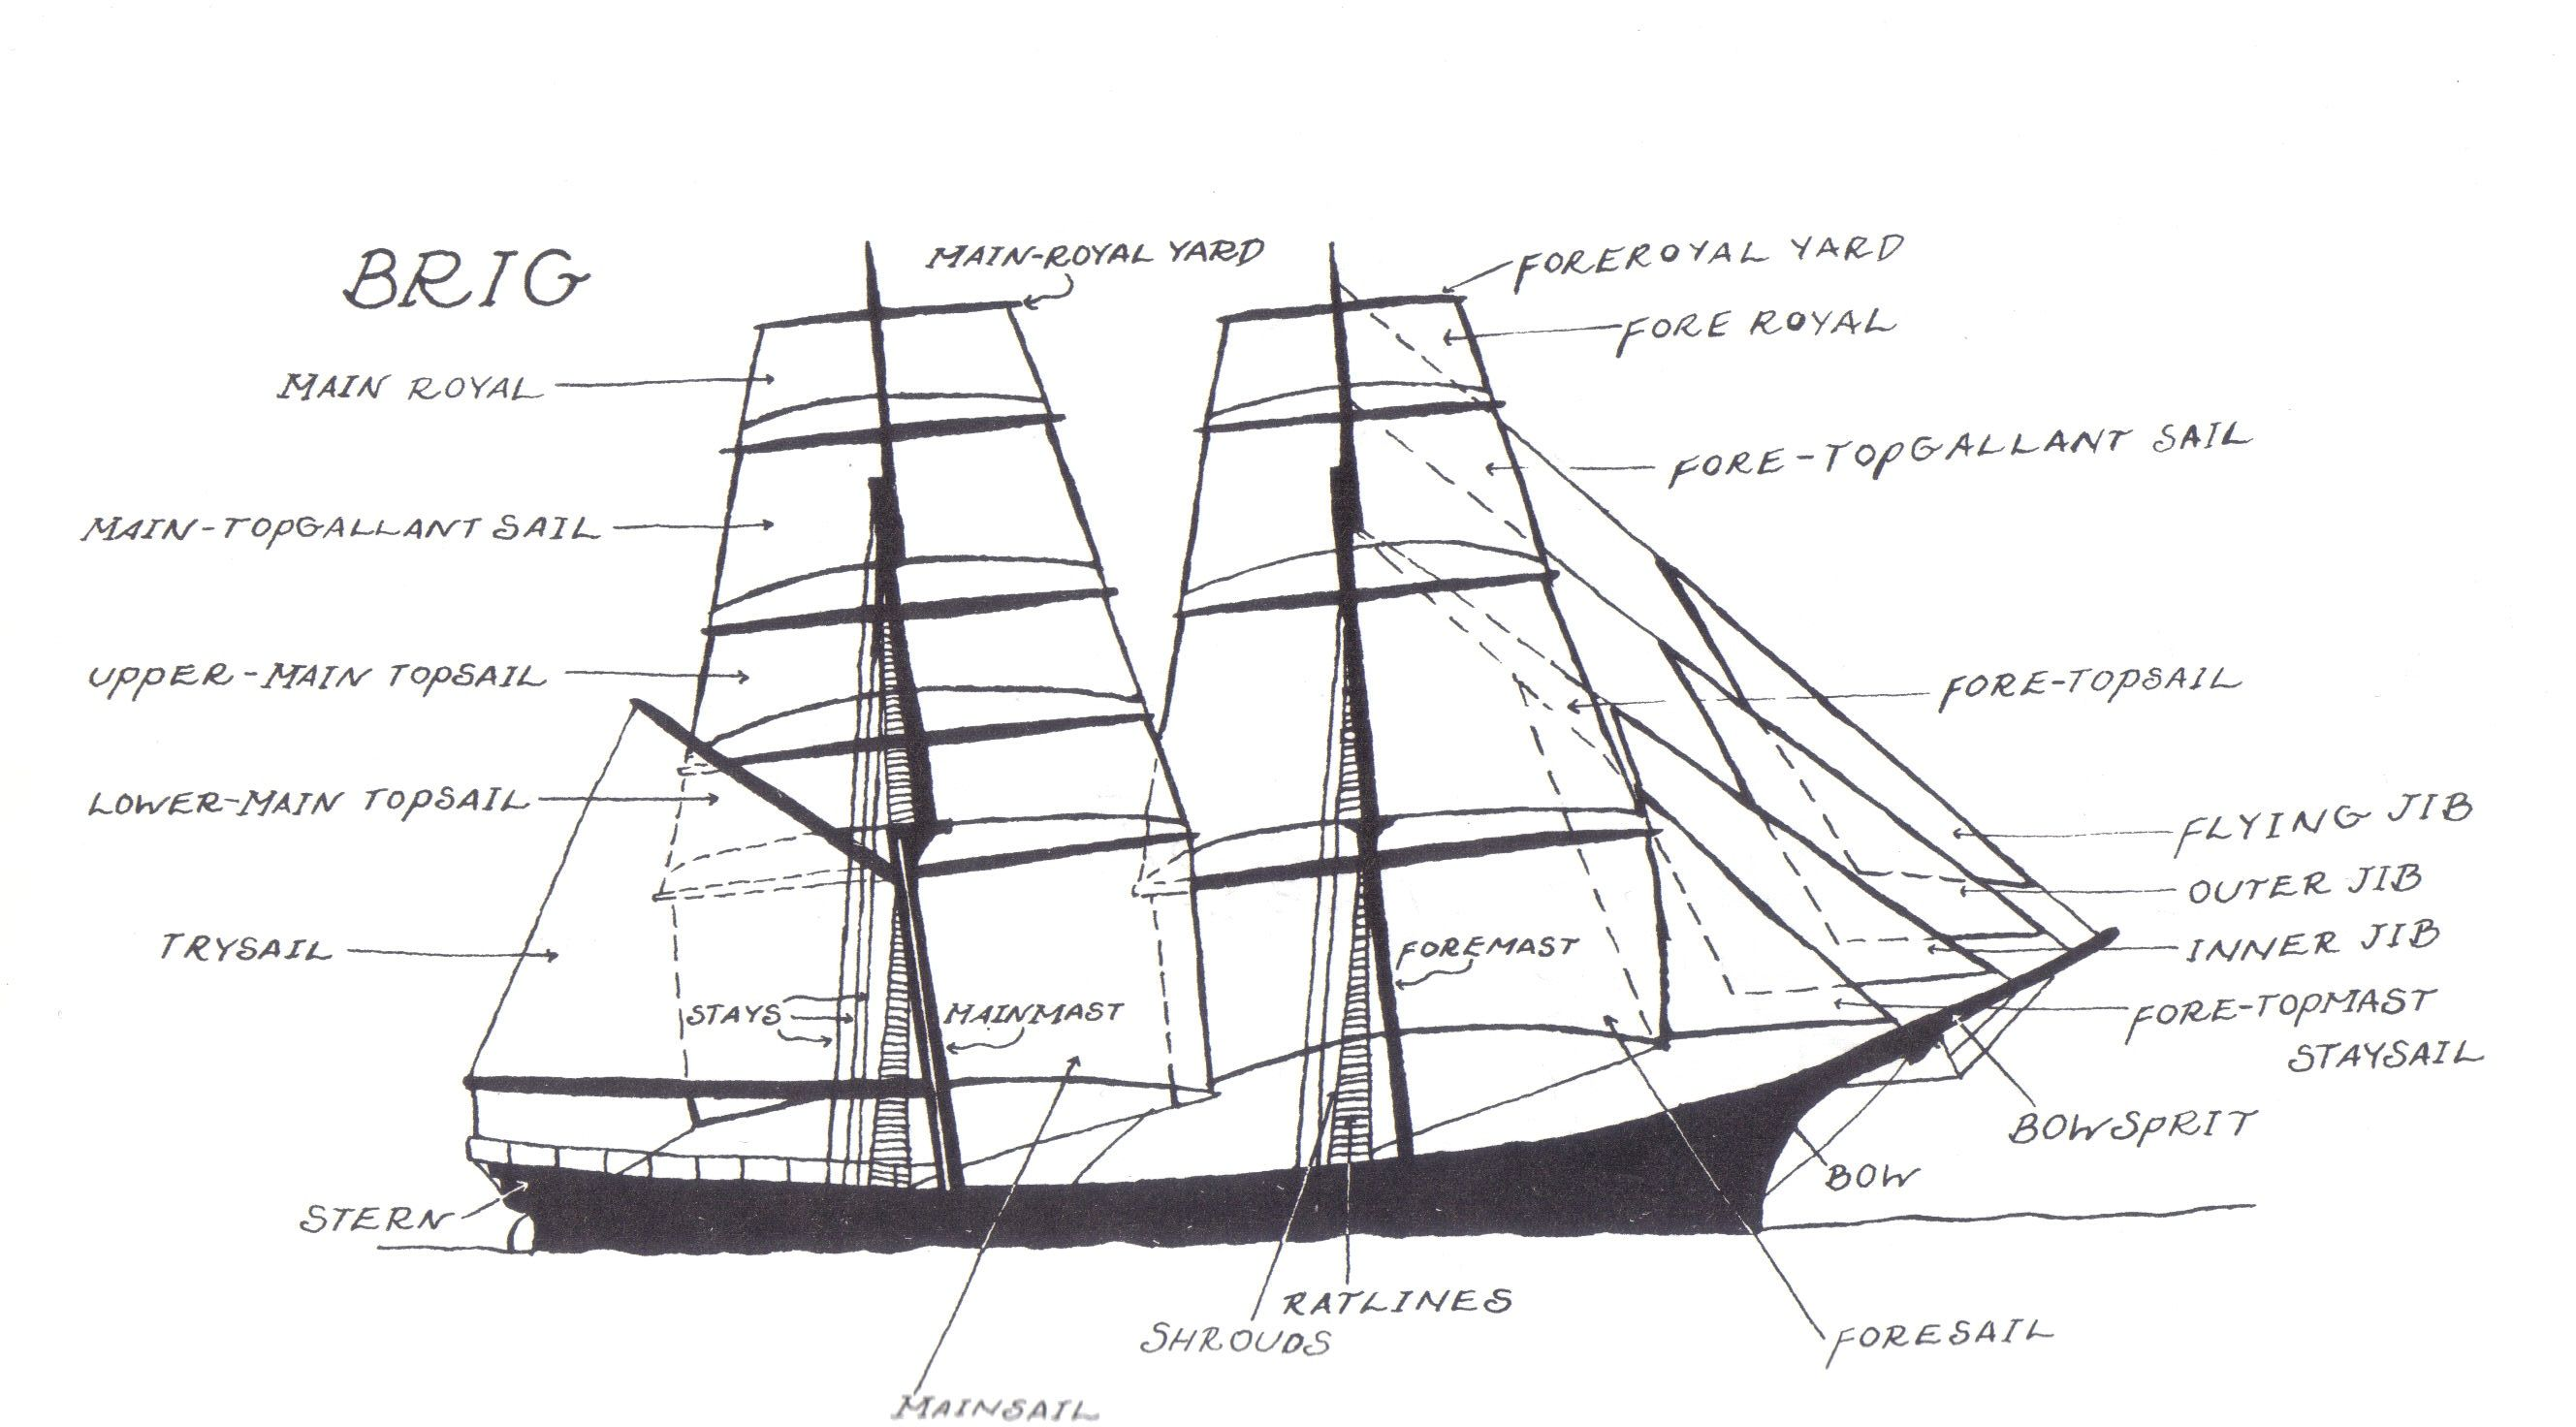 hight resolution of the true confessions of charlotte doyle ship diagram while the diagram might be helpful in identifying what the